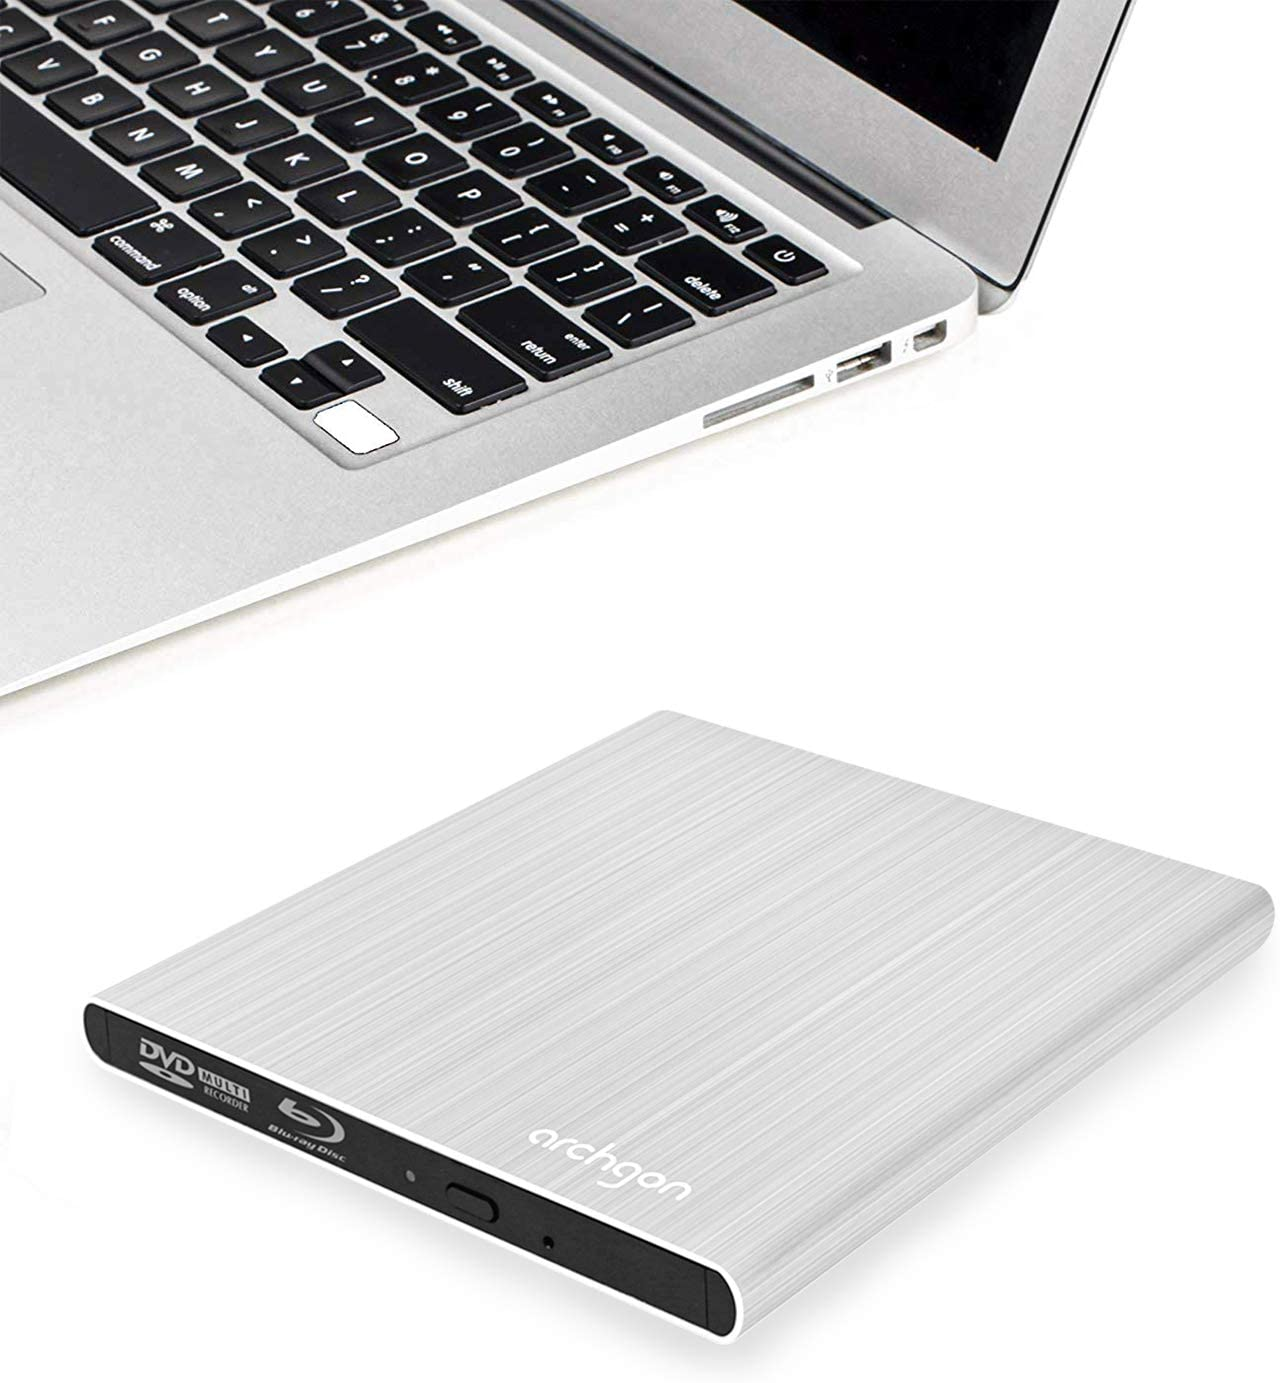 SEA TECH Aluminum External USB Blu-Ray Writer Super Drive for Apple MacBook Air, Pro, iMac